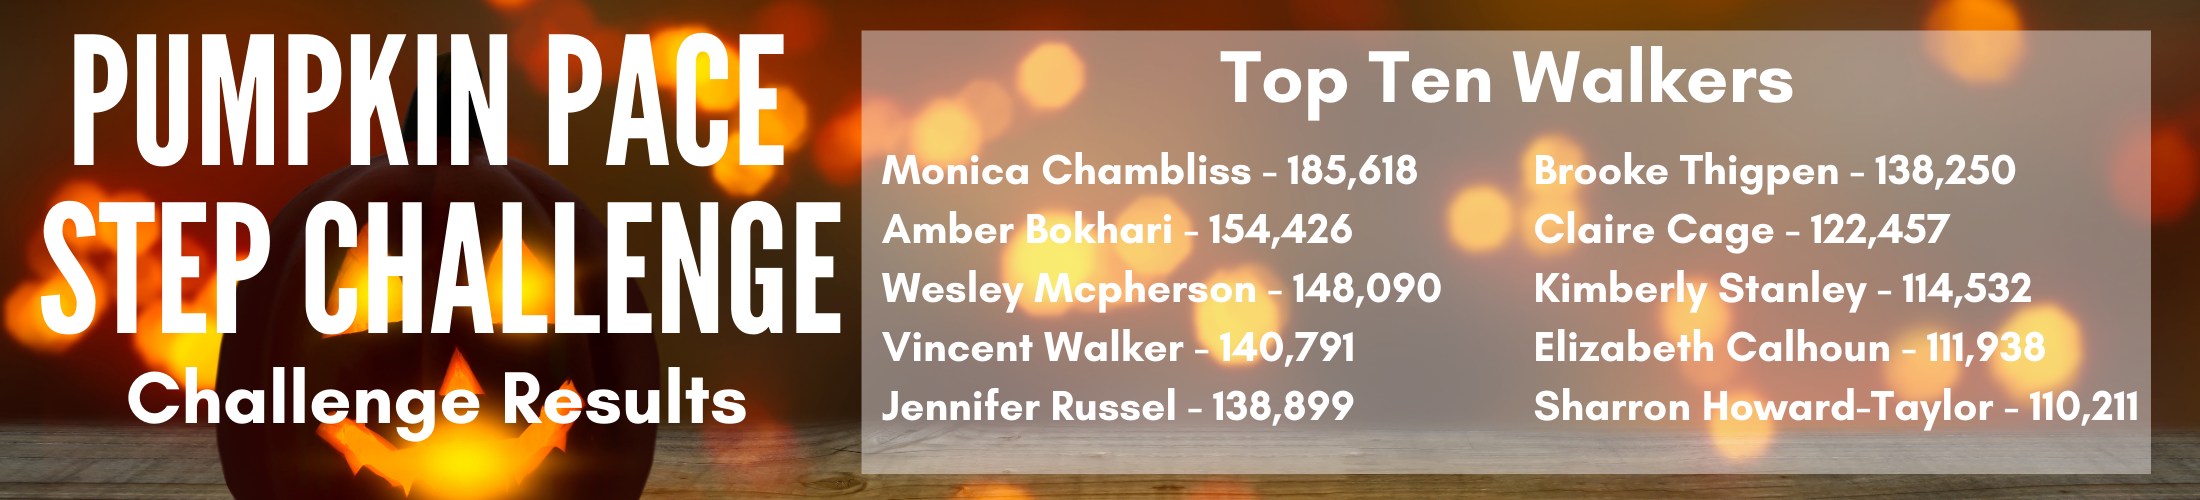 Pumpkin Pace Step Challenge Challenge Results - Top Ten Walkers